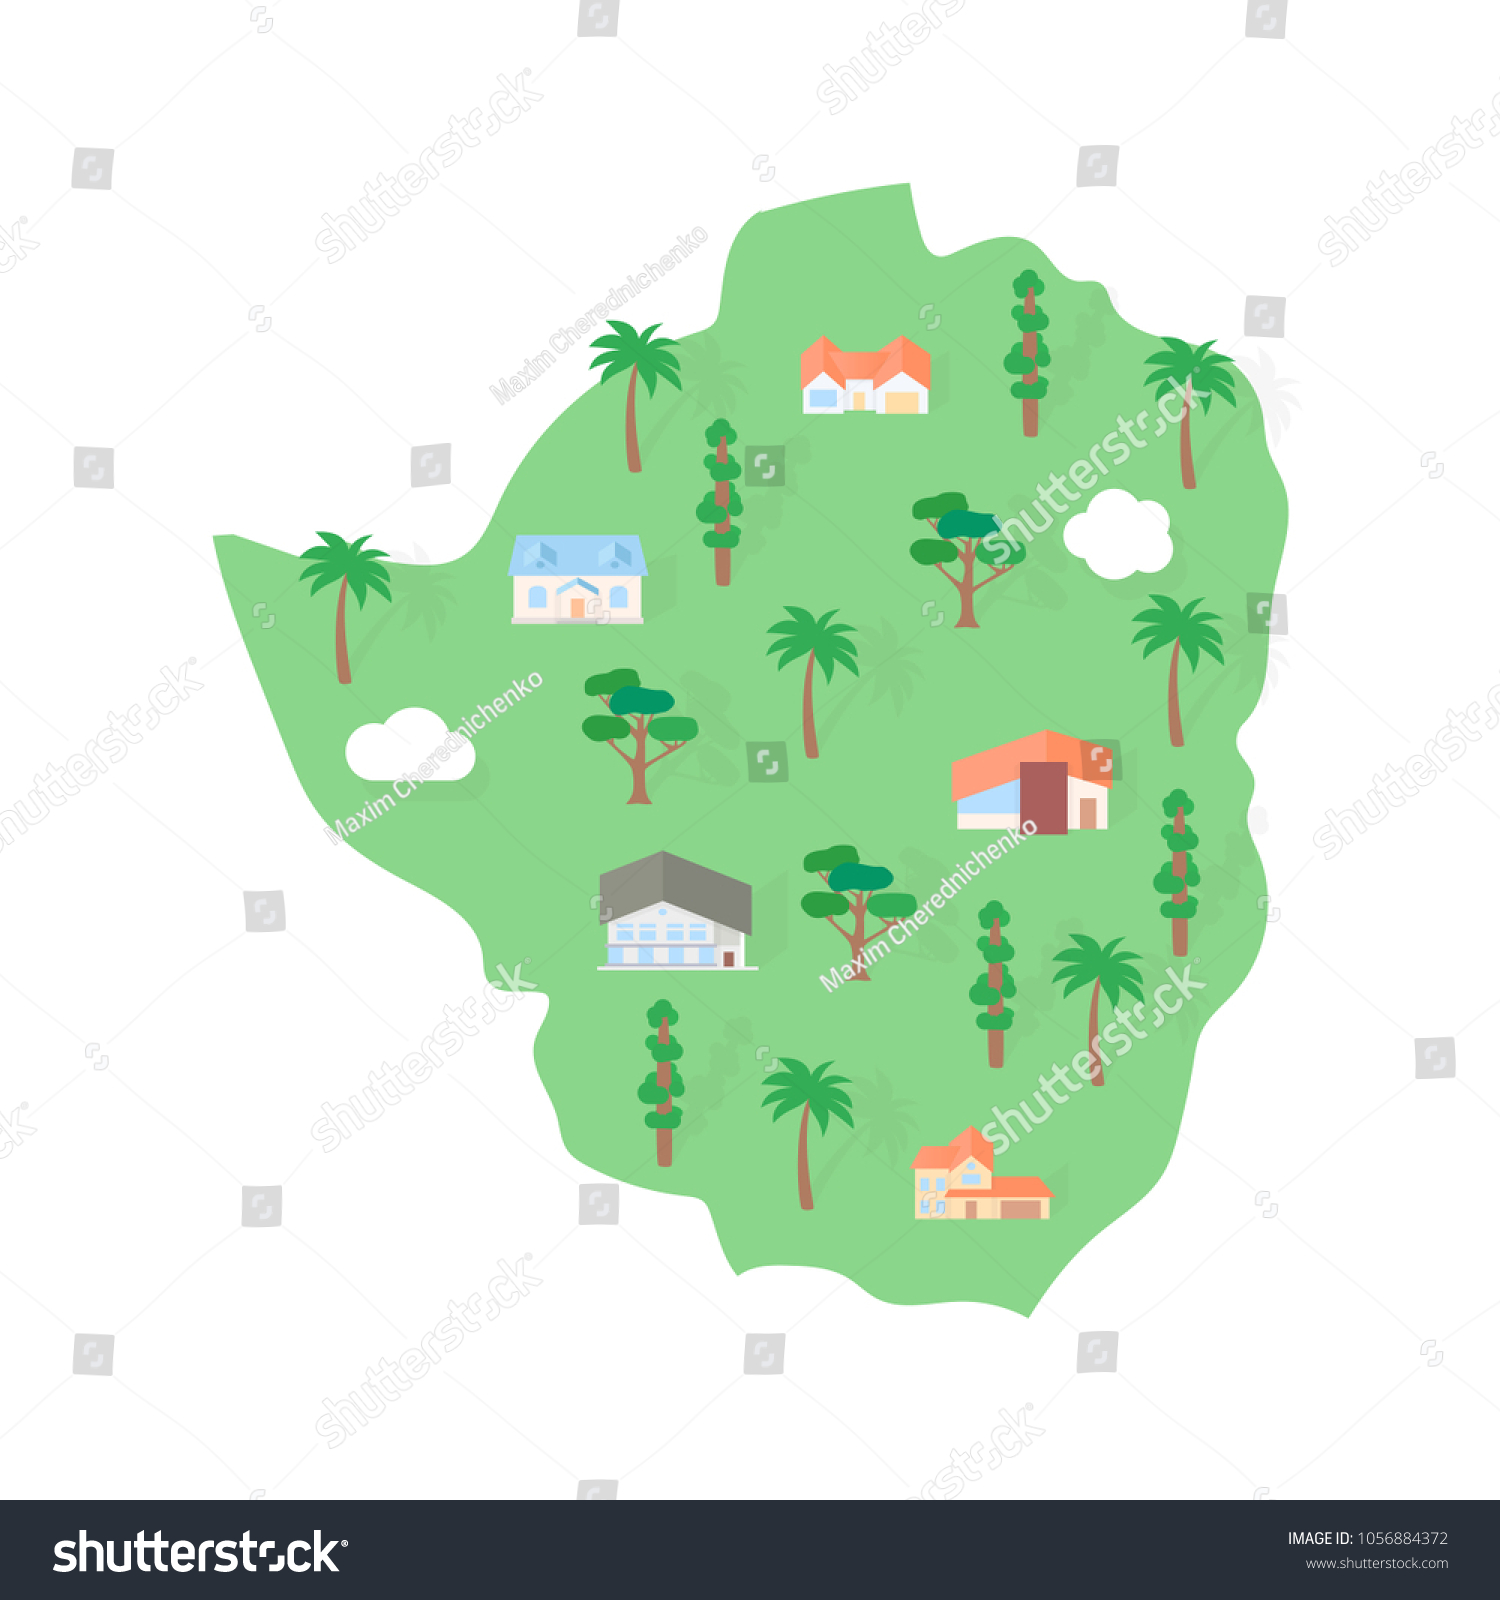 Map Of Africa Showing Zimbabwe.Zimbabwe African Map Real Estate Stock Vector Royalty Free